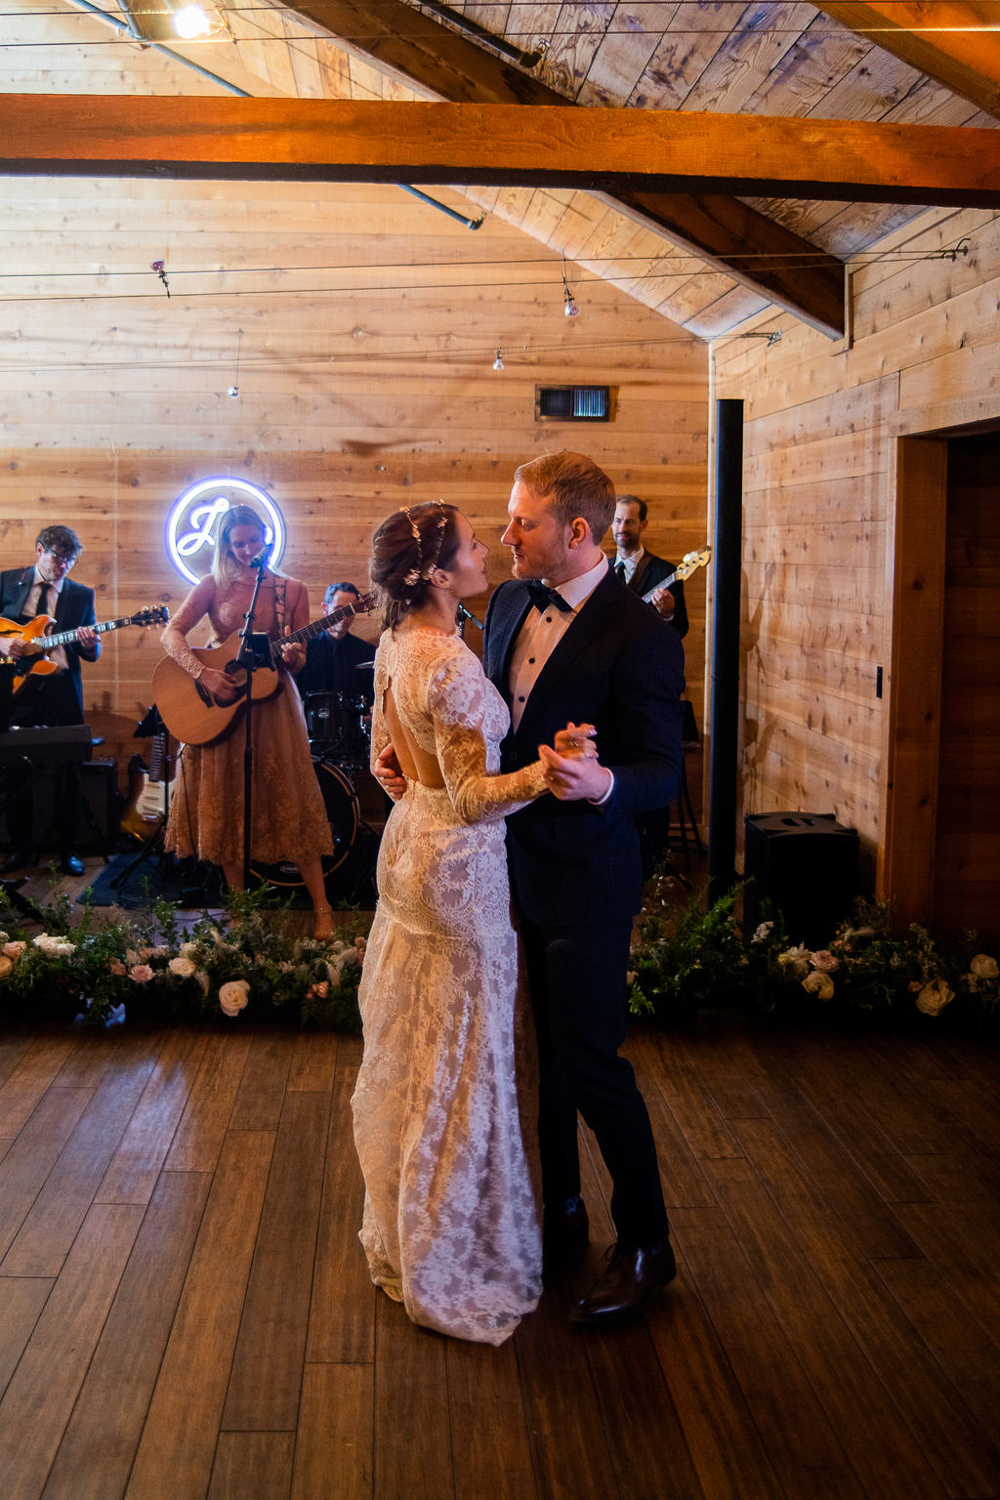 couple dancing for wedding reception in wooden event space